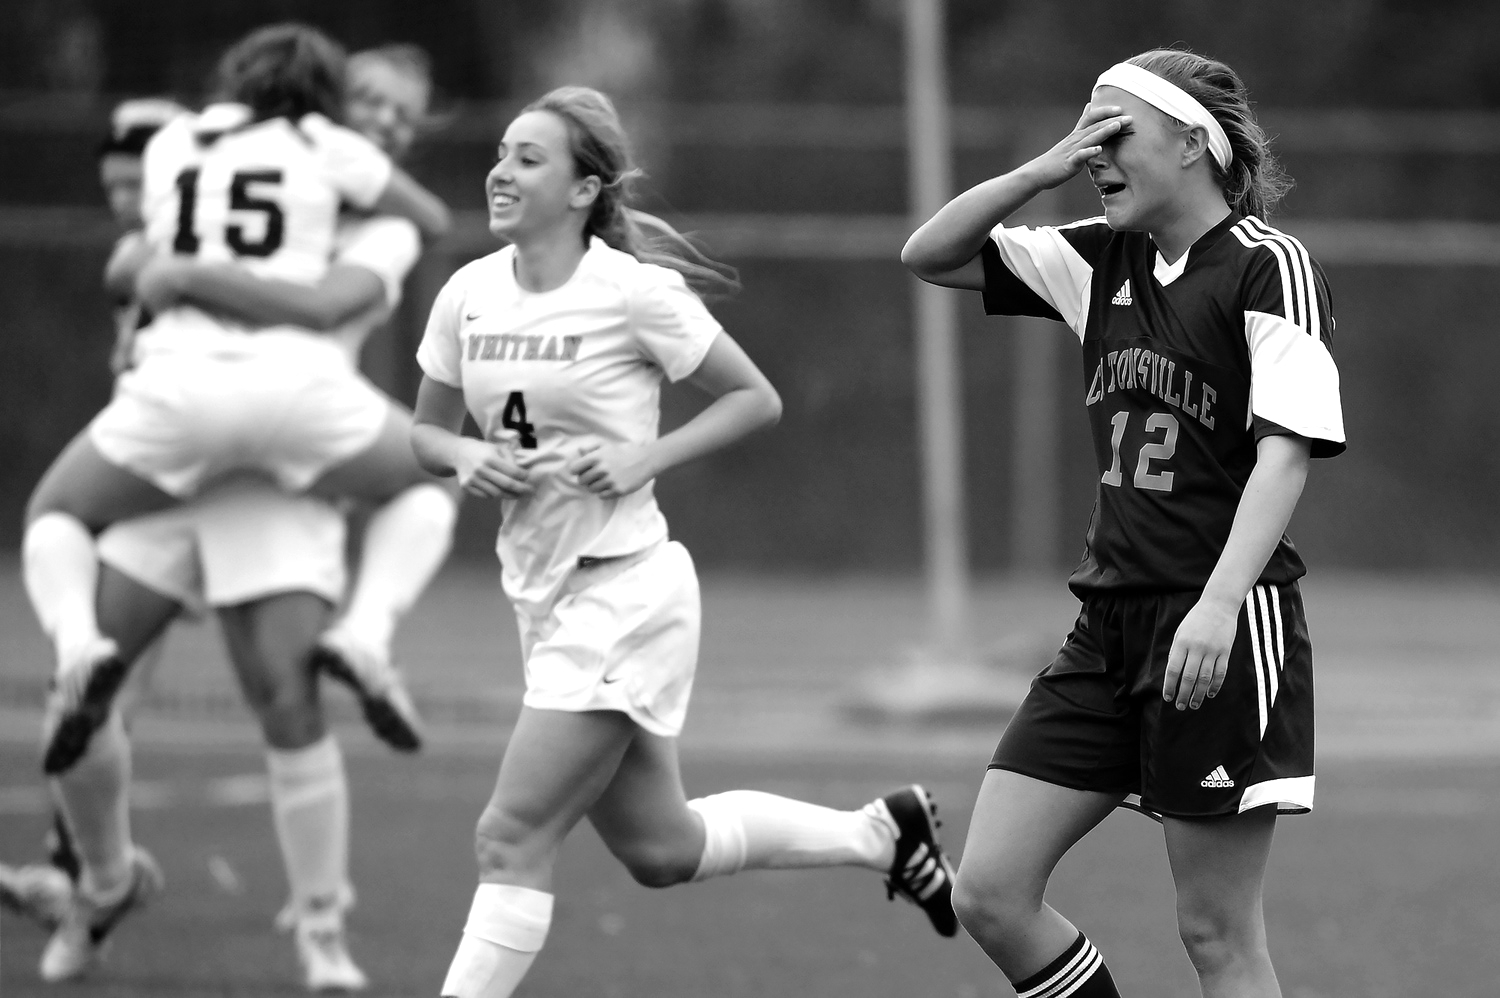 Catonsville High School forward Jennifer Nonn, right, reacts after losing to Walt Whitman High School during the 4A State Championship on Saturday, Nov. 16 at UMBC stadium.